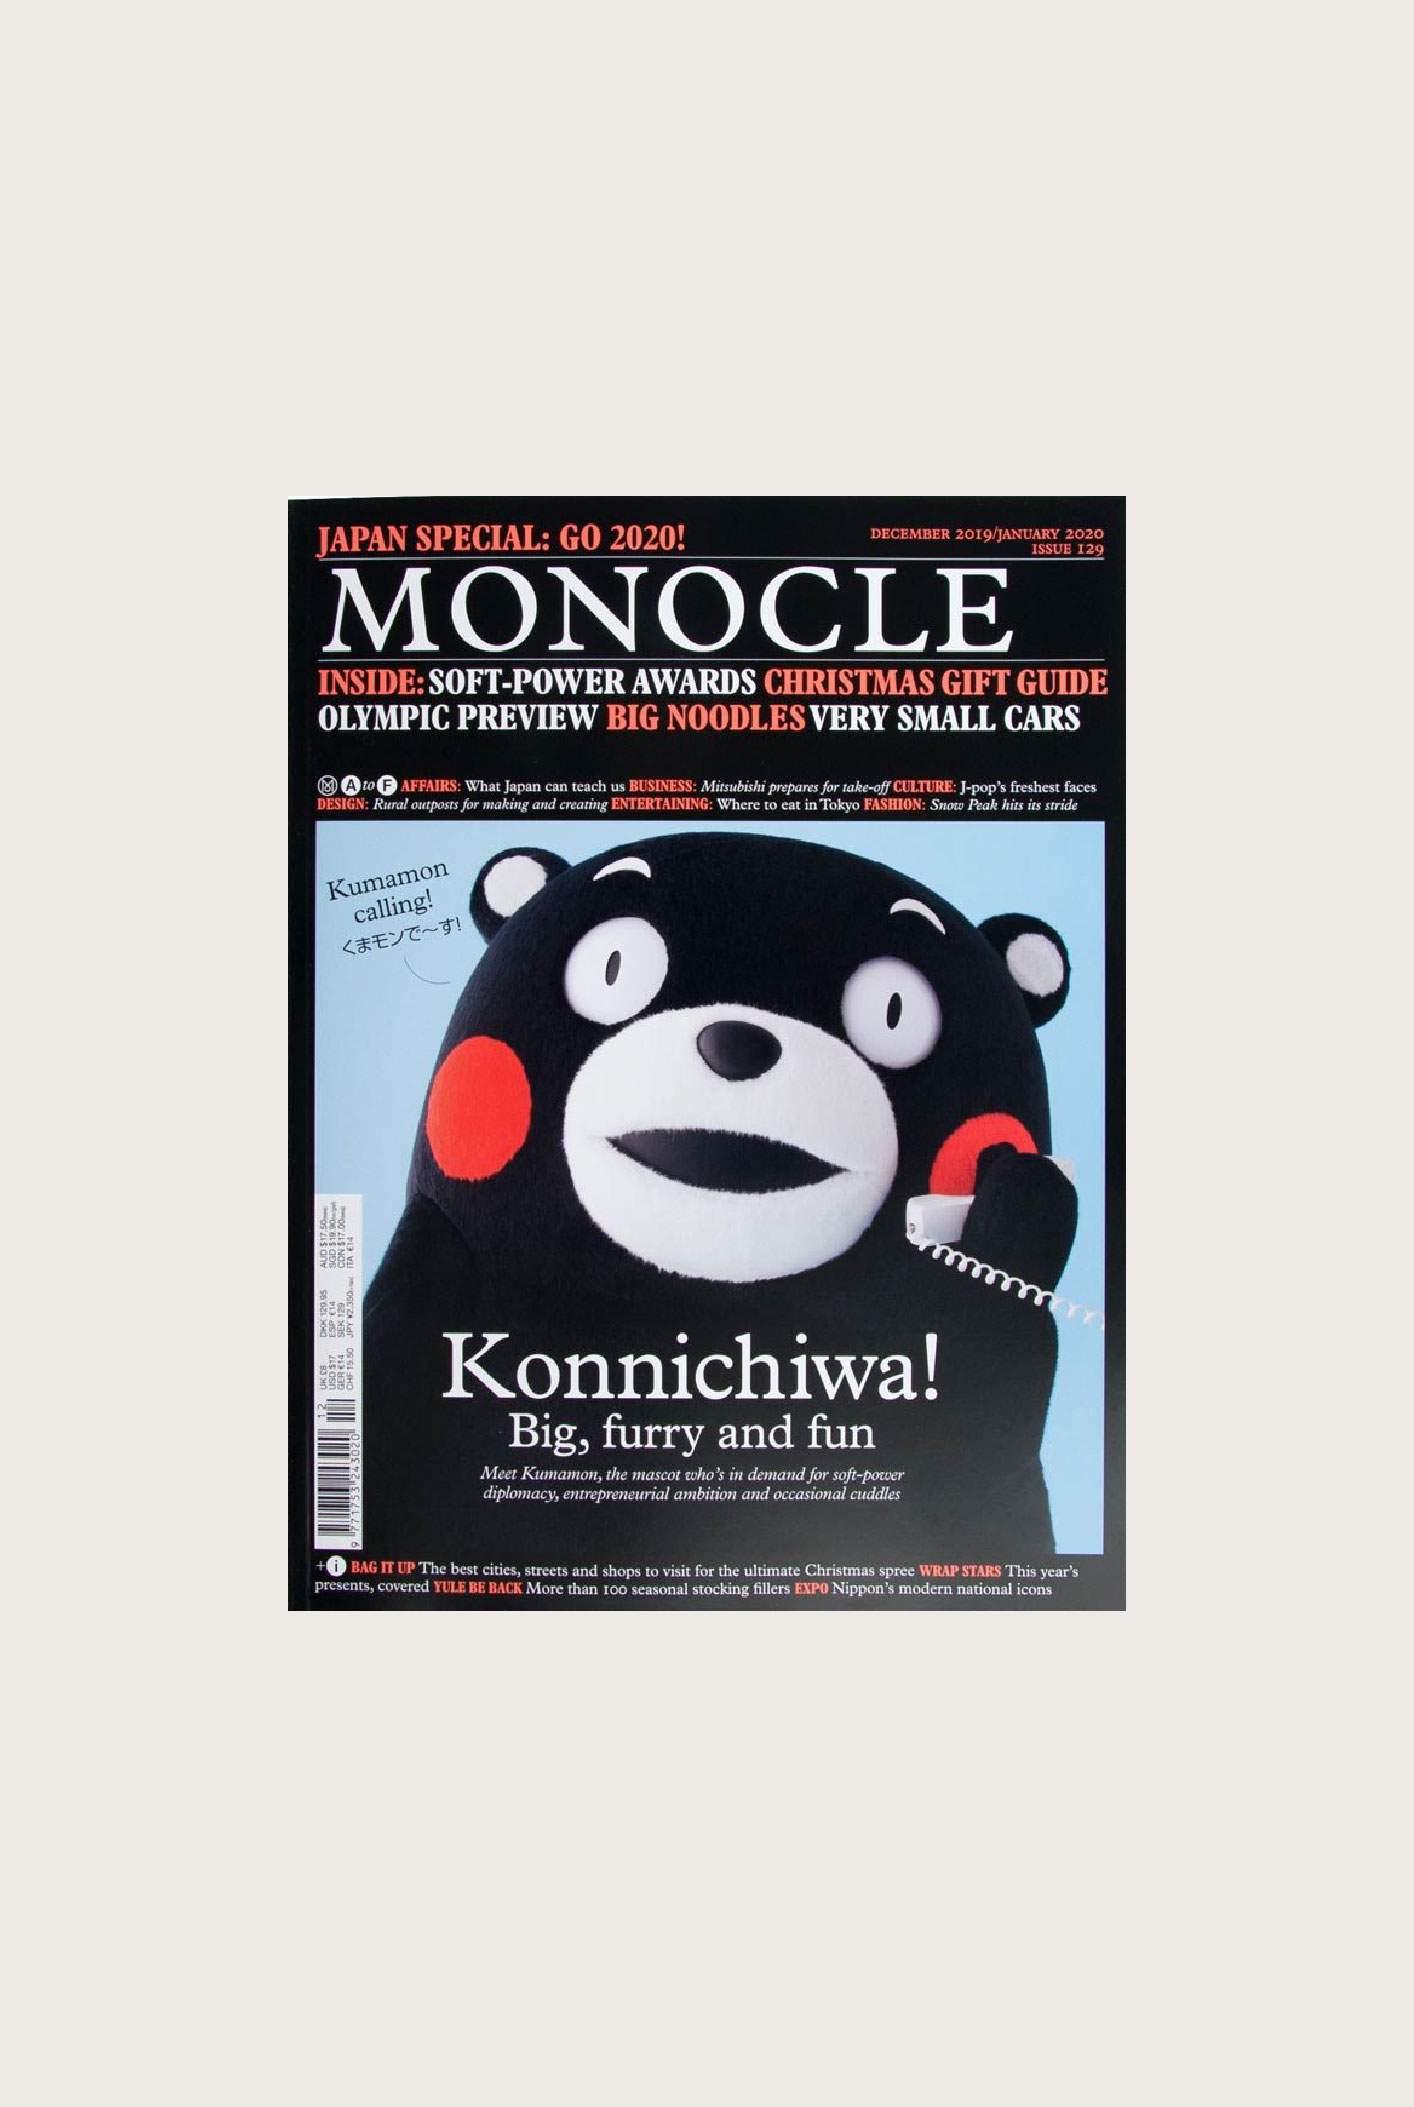 Monocle Dec/Jan 2019/2020